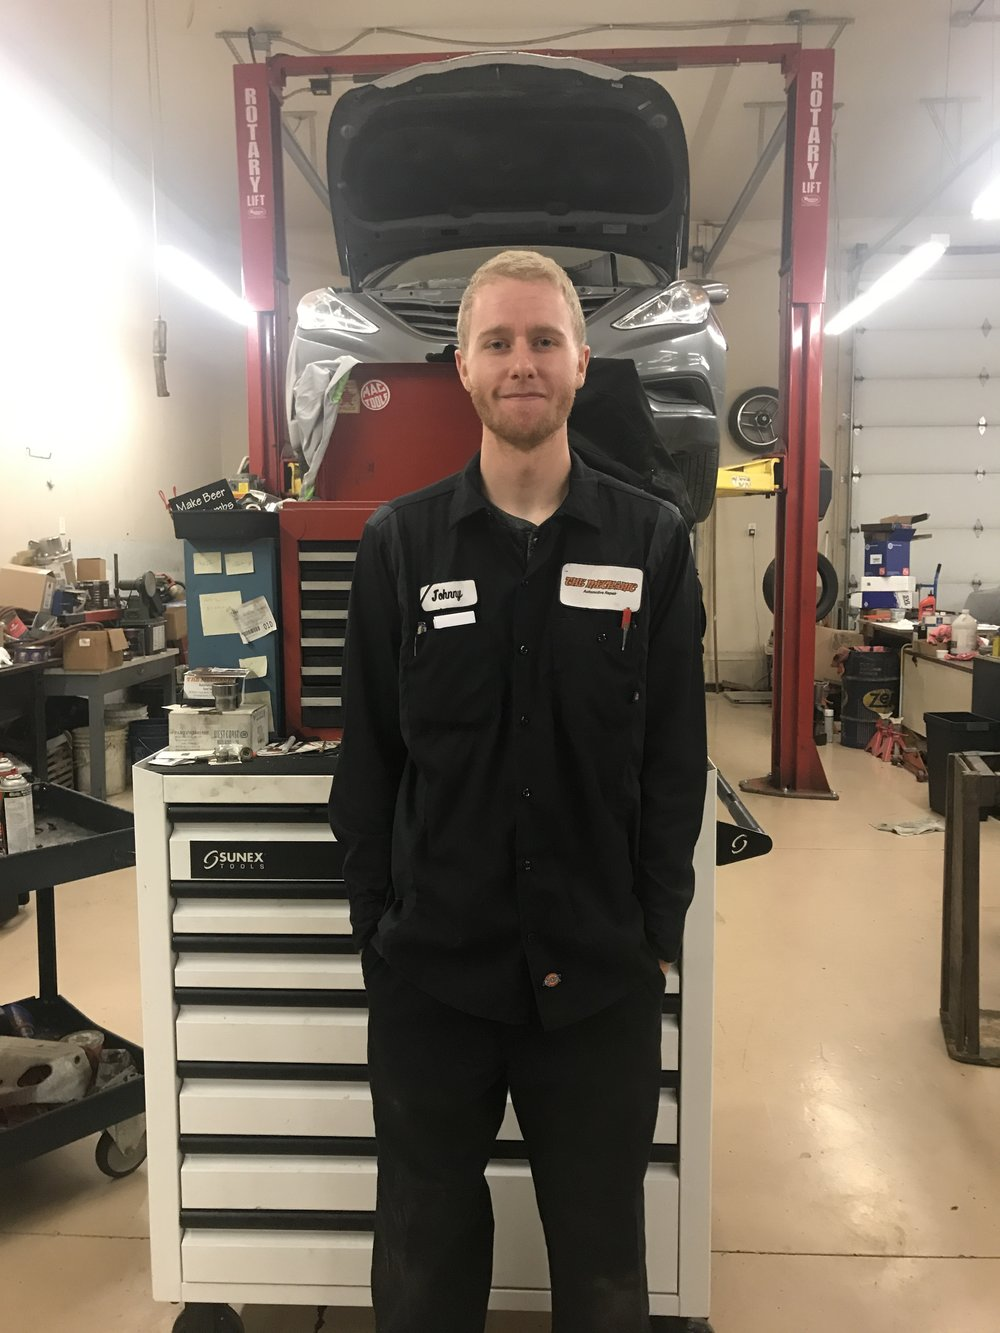 Johnny grew up in Bluffdale and graduated from Paradigm High School. He is currently working on an automotive technician degree from Salt Lake Community College. His hobbies include riding his Yamaha dirt bike (YZ250) and taking care of his beautiful Subaru WRX.